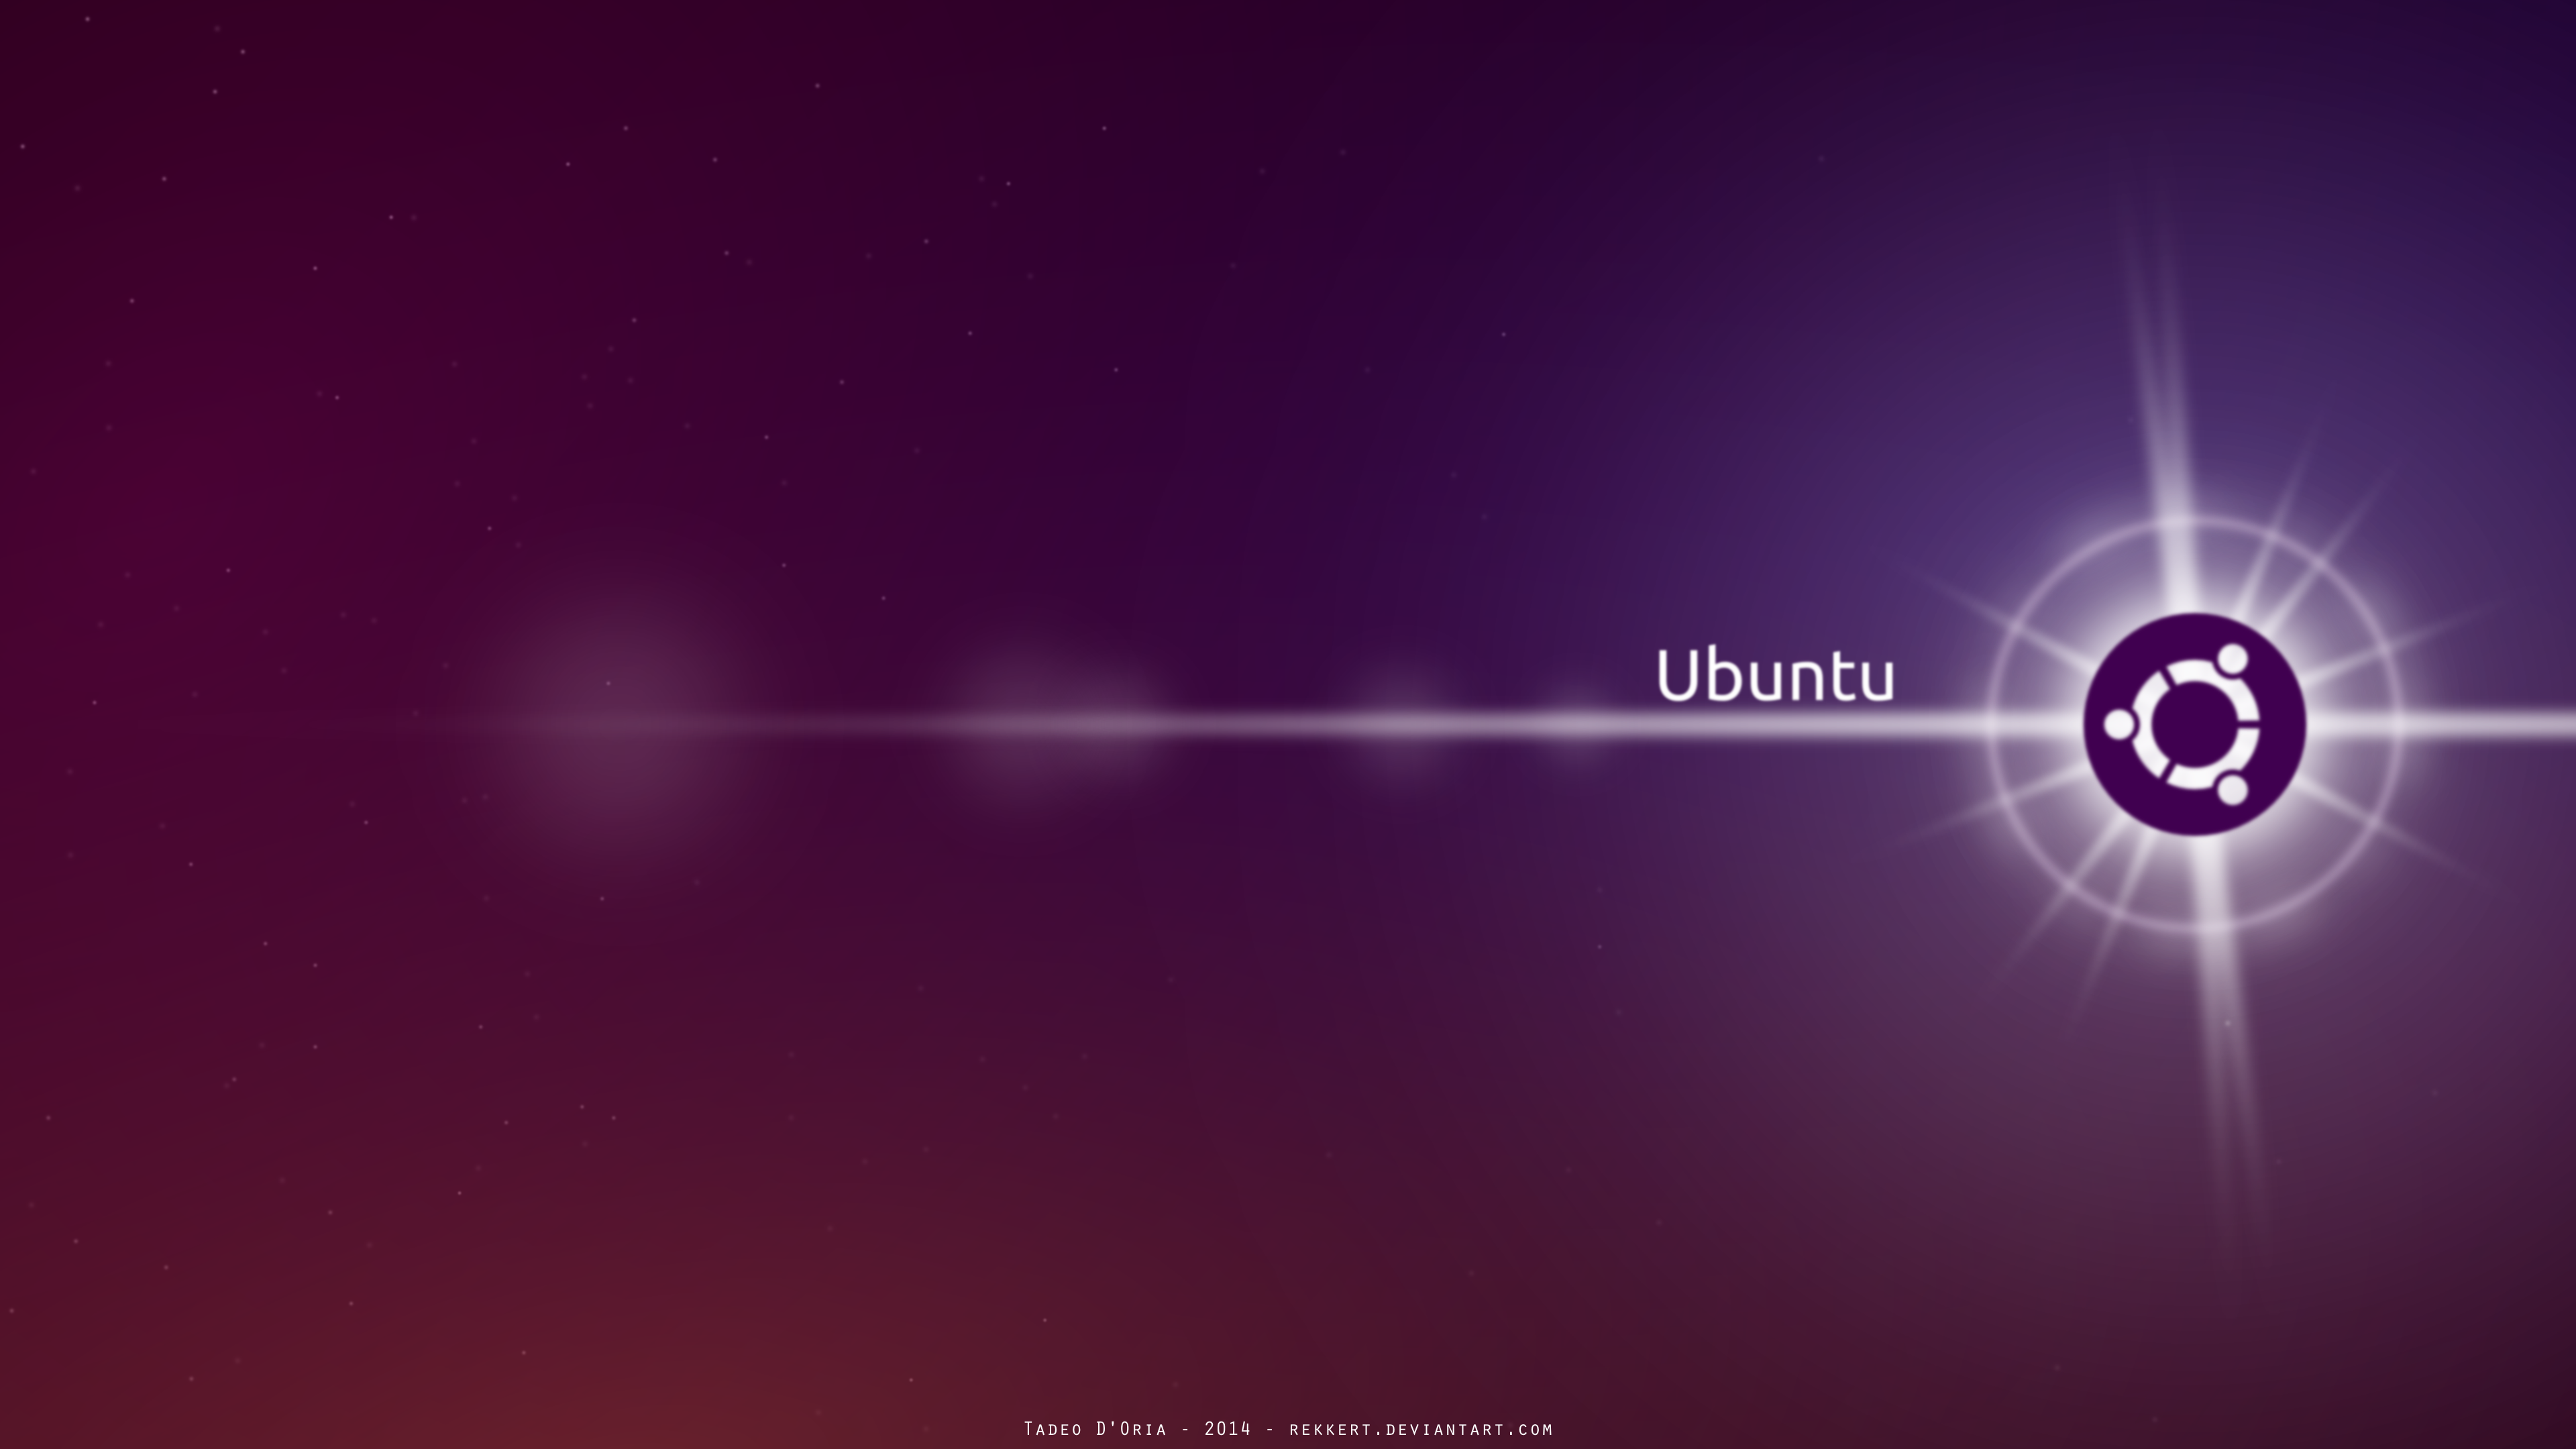 ubuntu wallpaper by rekkert on deviantart